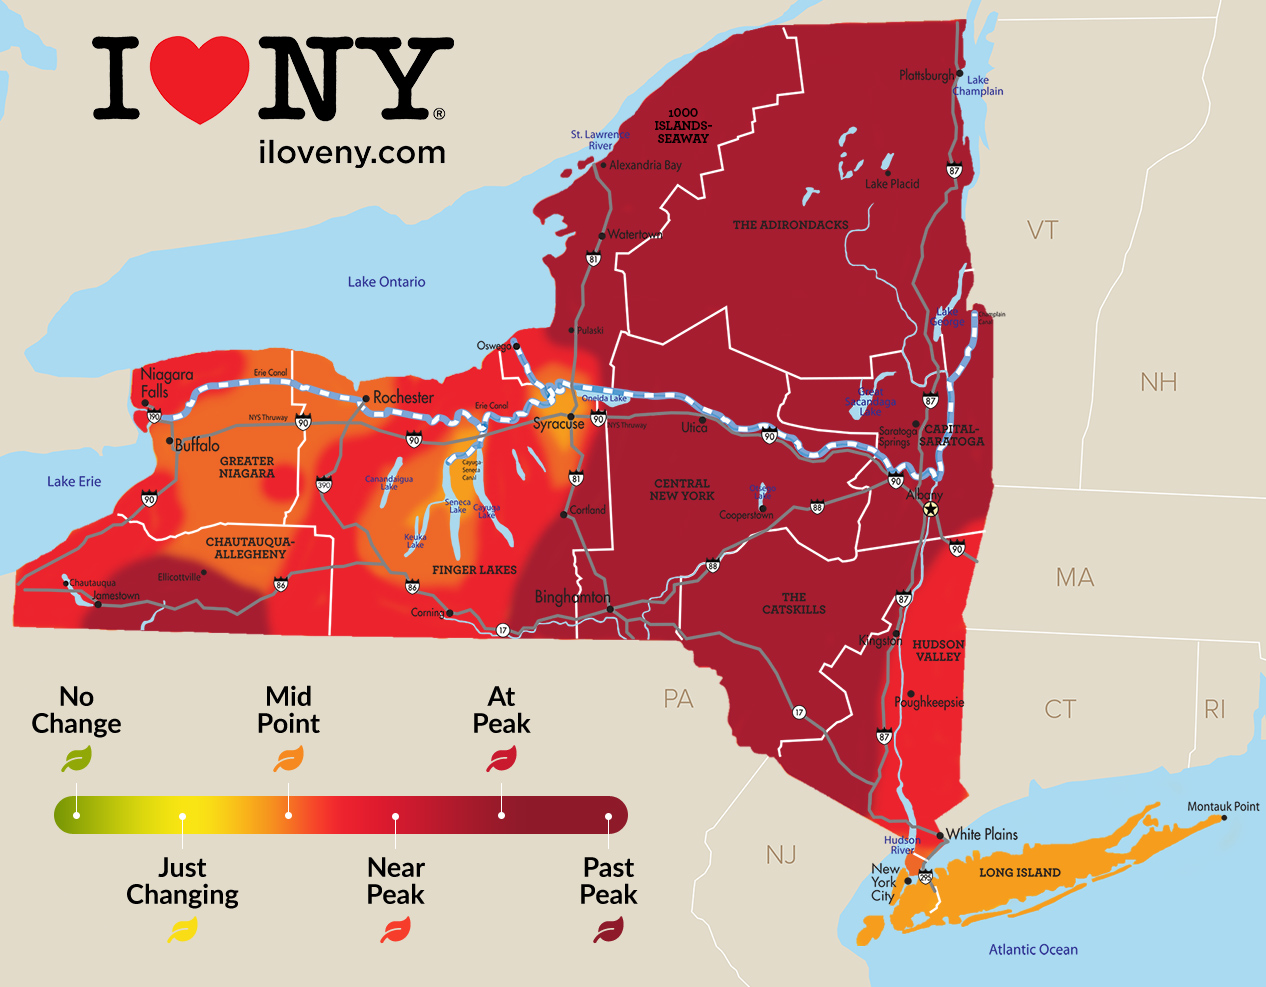 Upstate NY fall foliage 2019: Best bets in Western NY, Finger Lakes, Hudson Valley regions